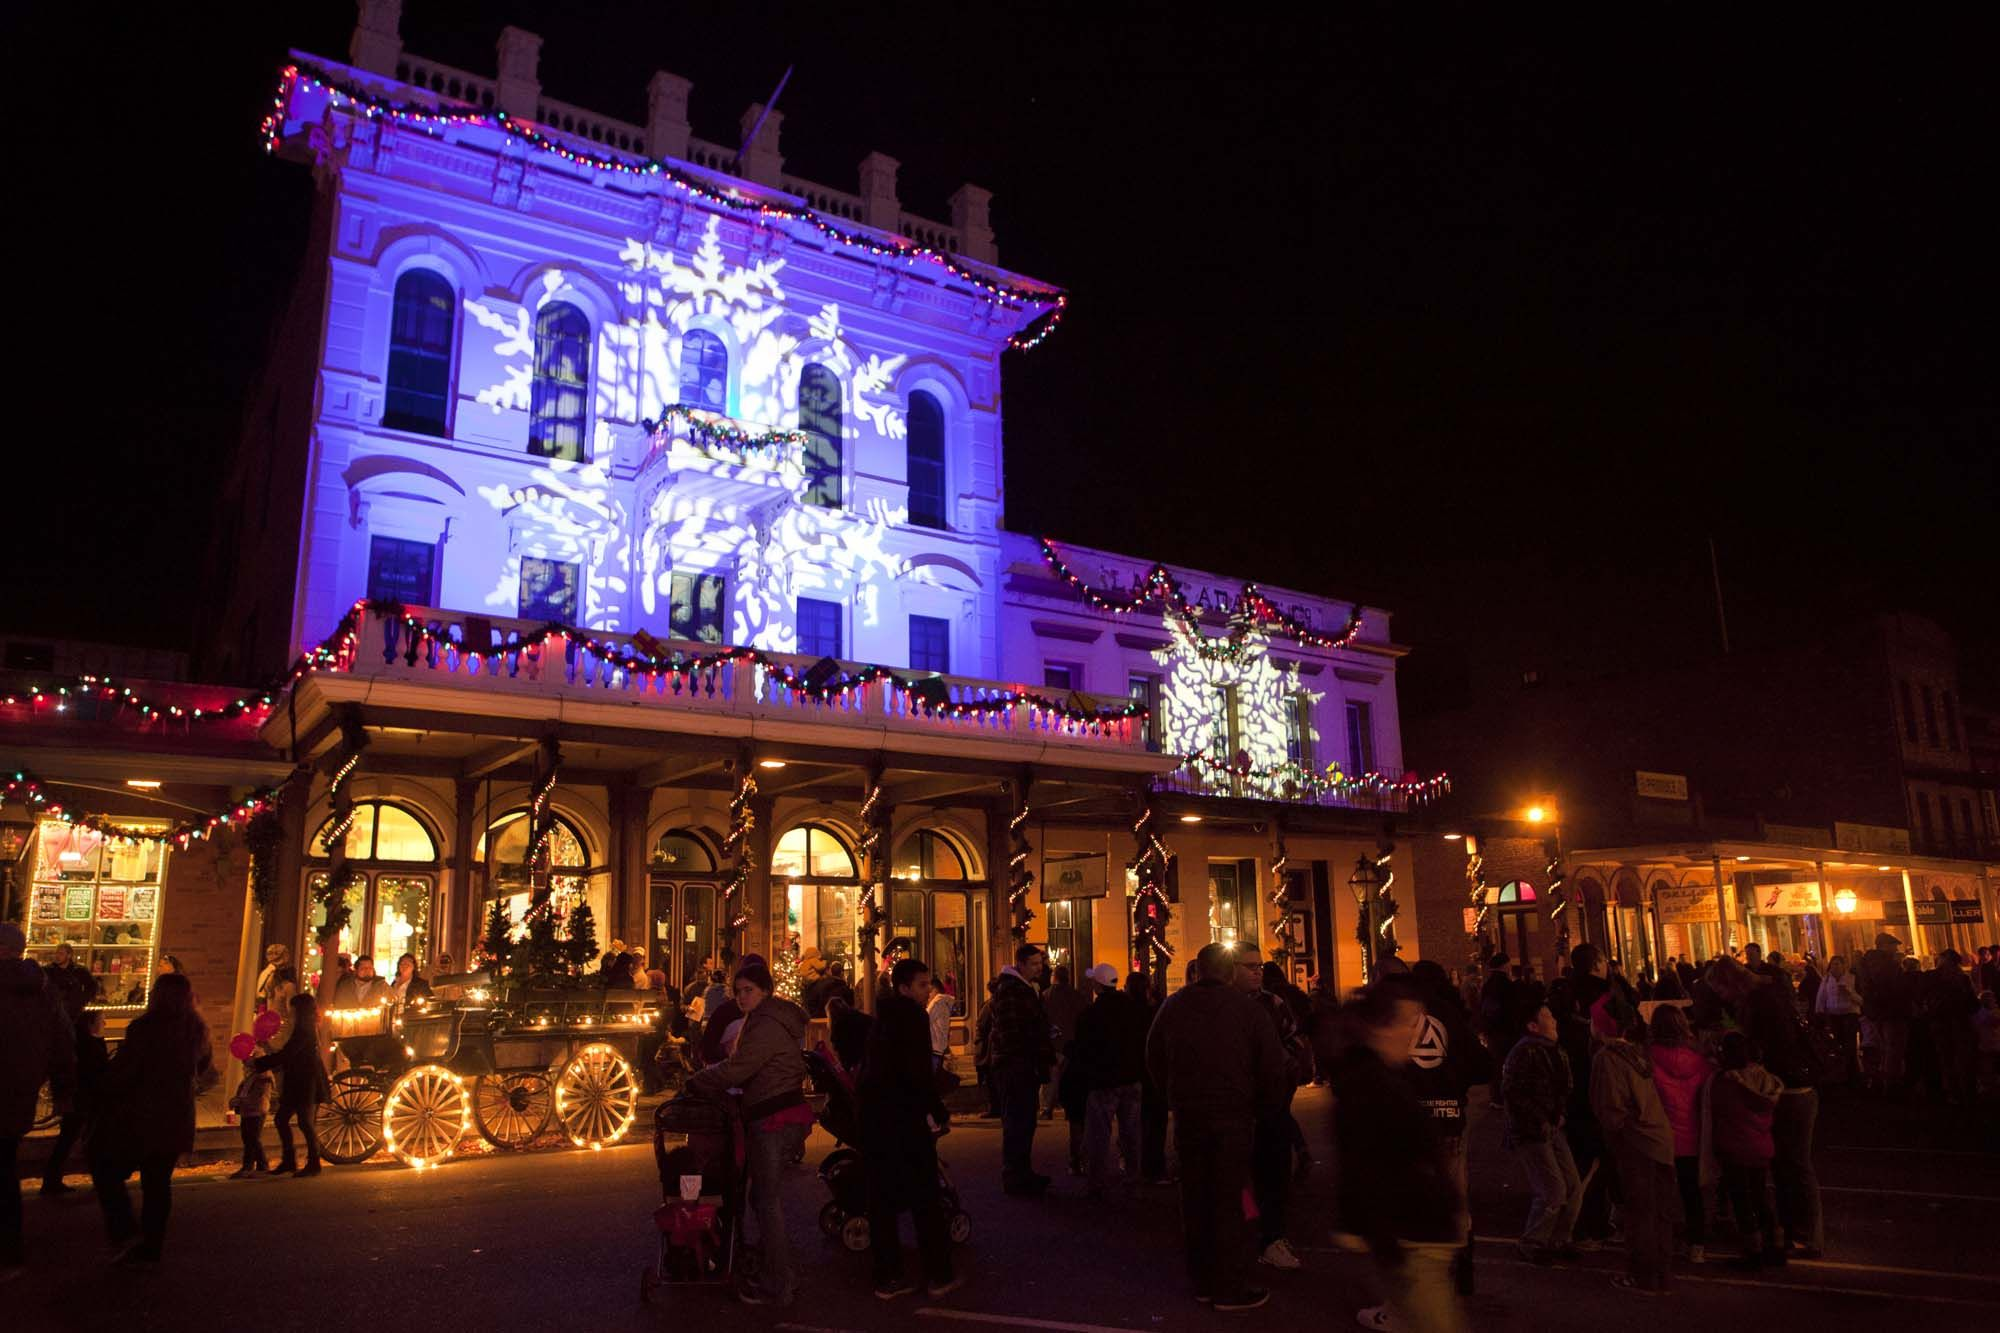 Theatre of Lights artfully mixes the historic charm of Old ...